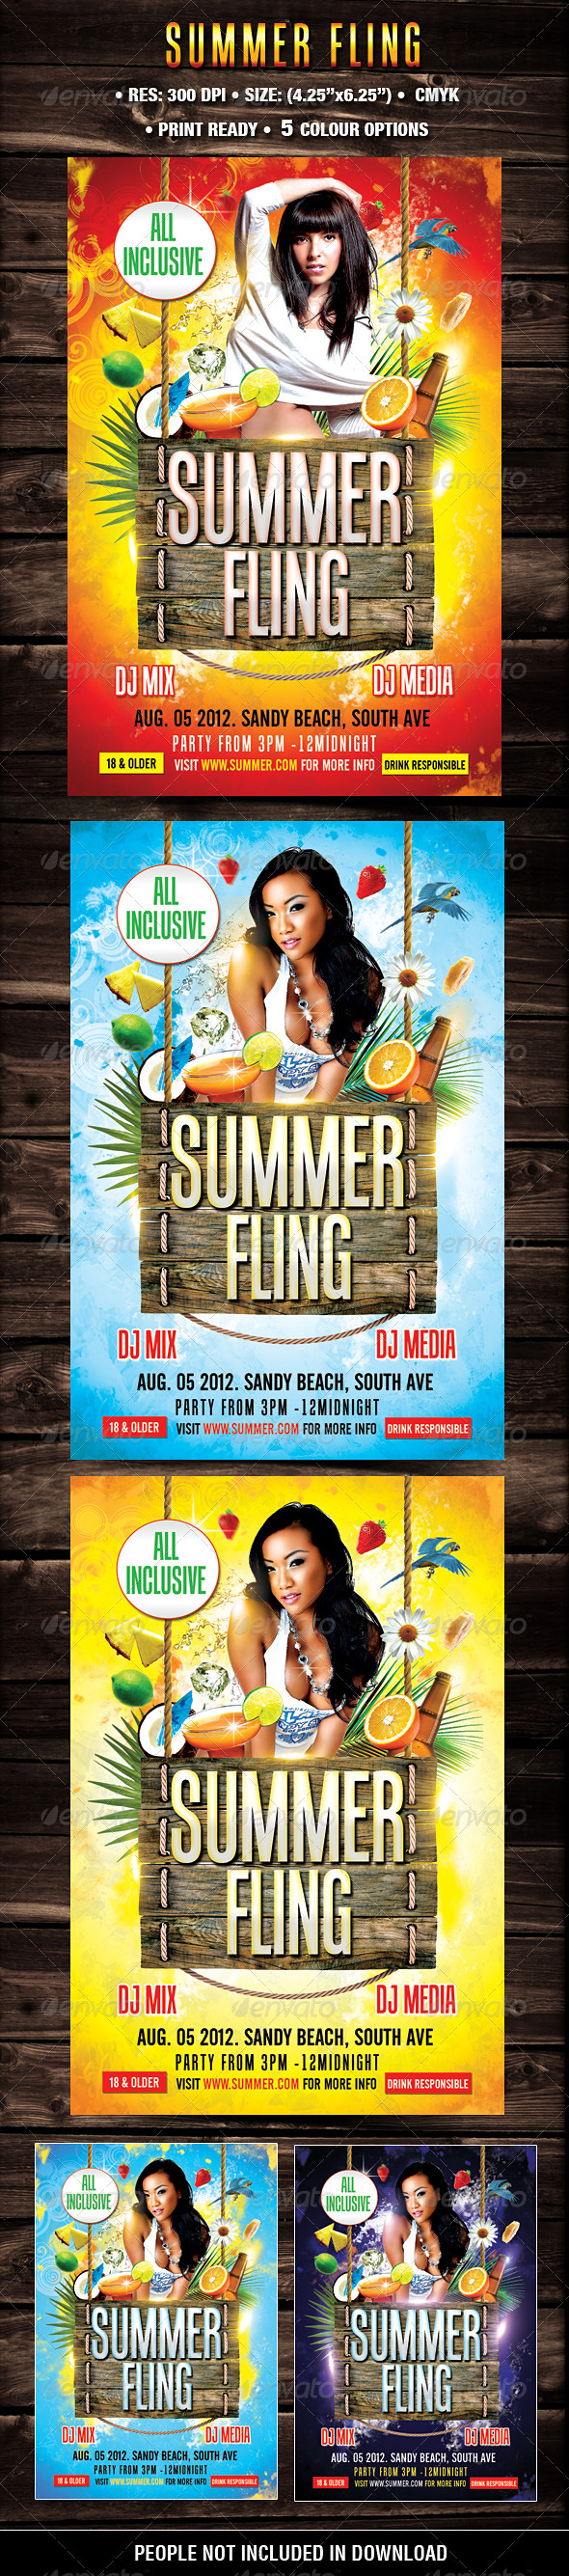 Summer Fling Template - Flyers Print Templates